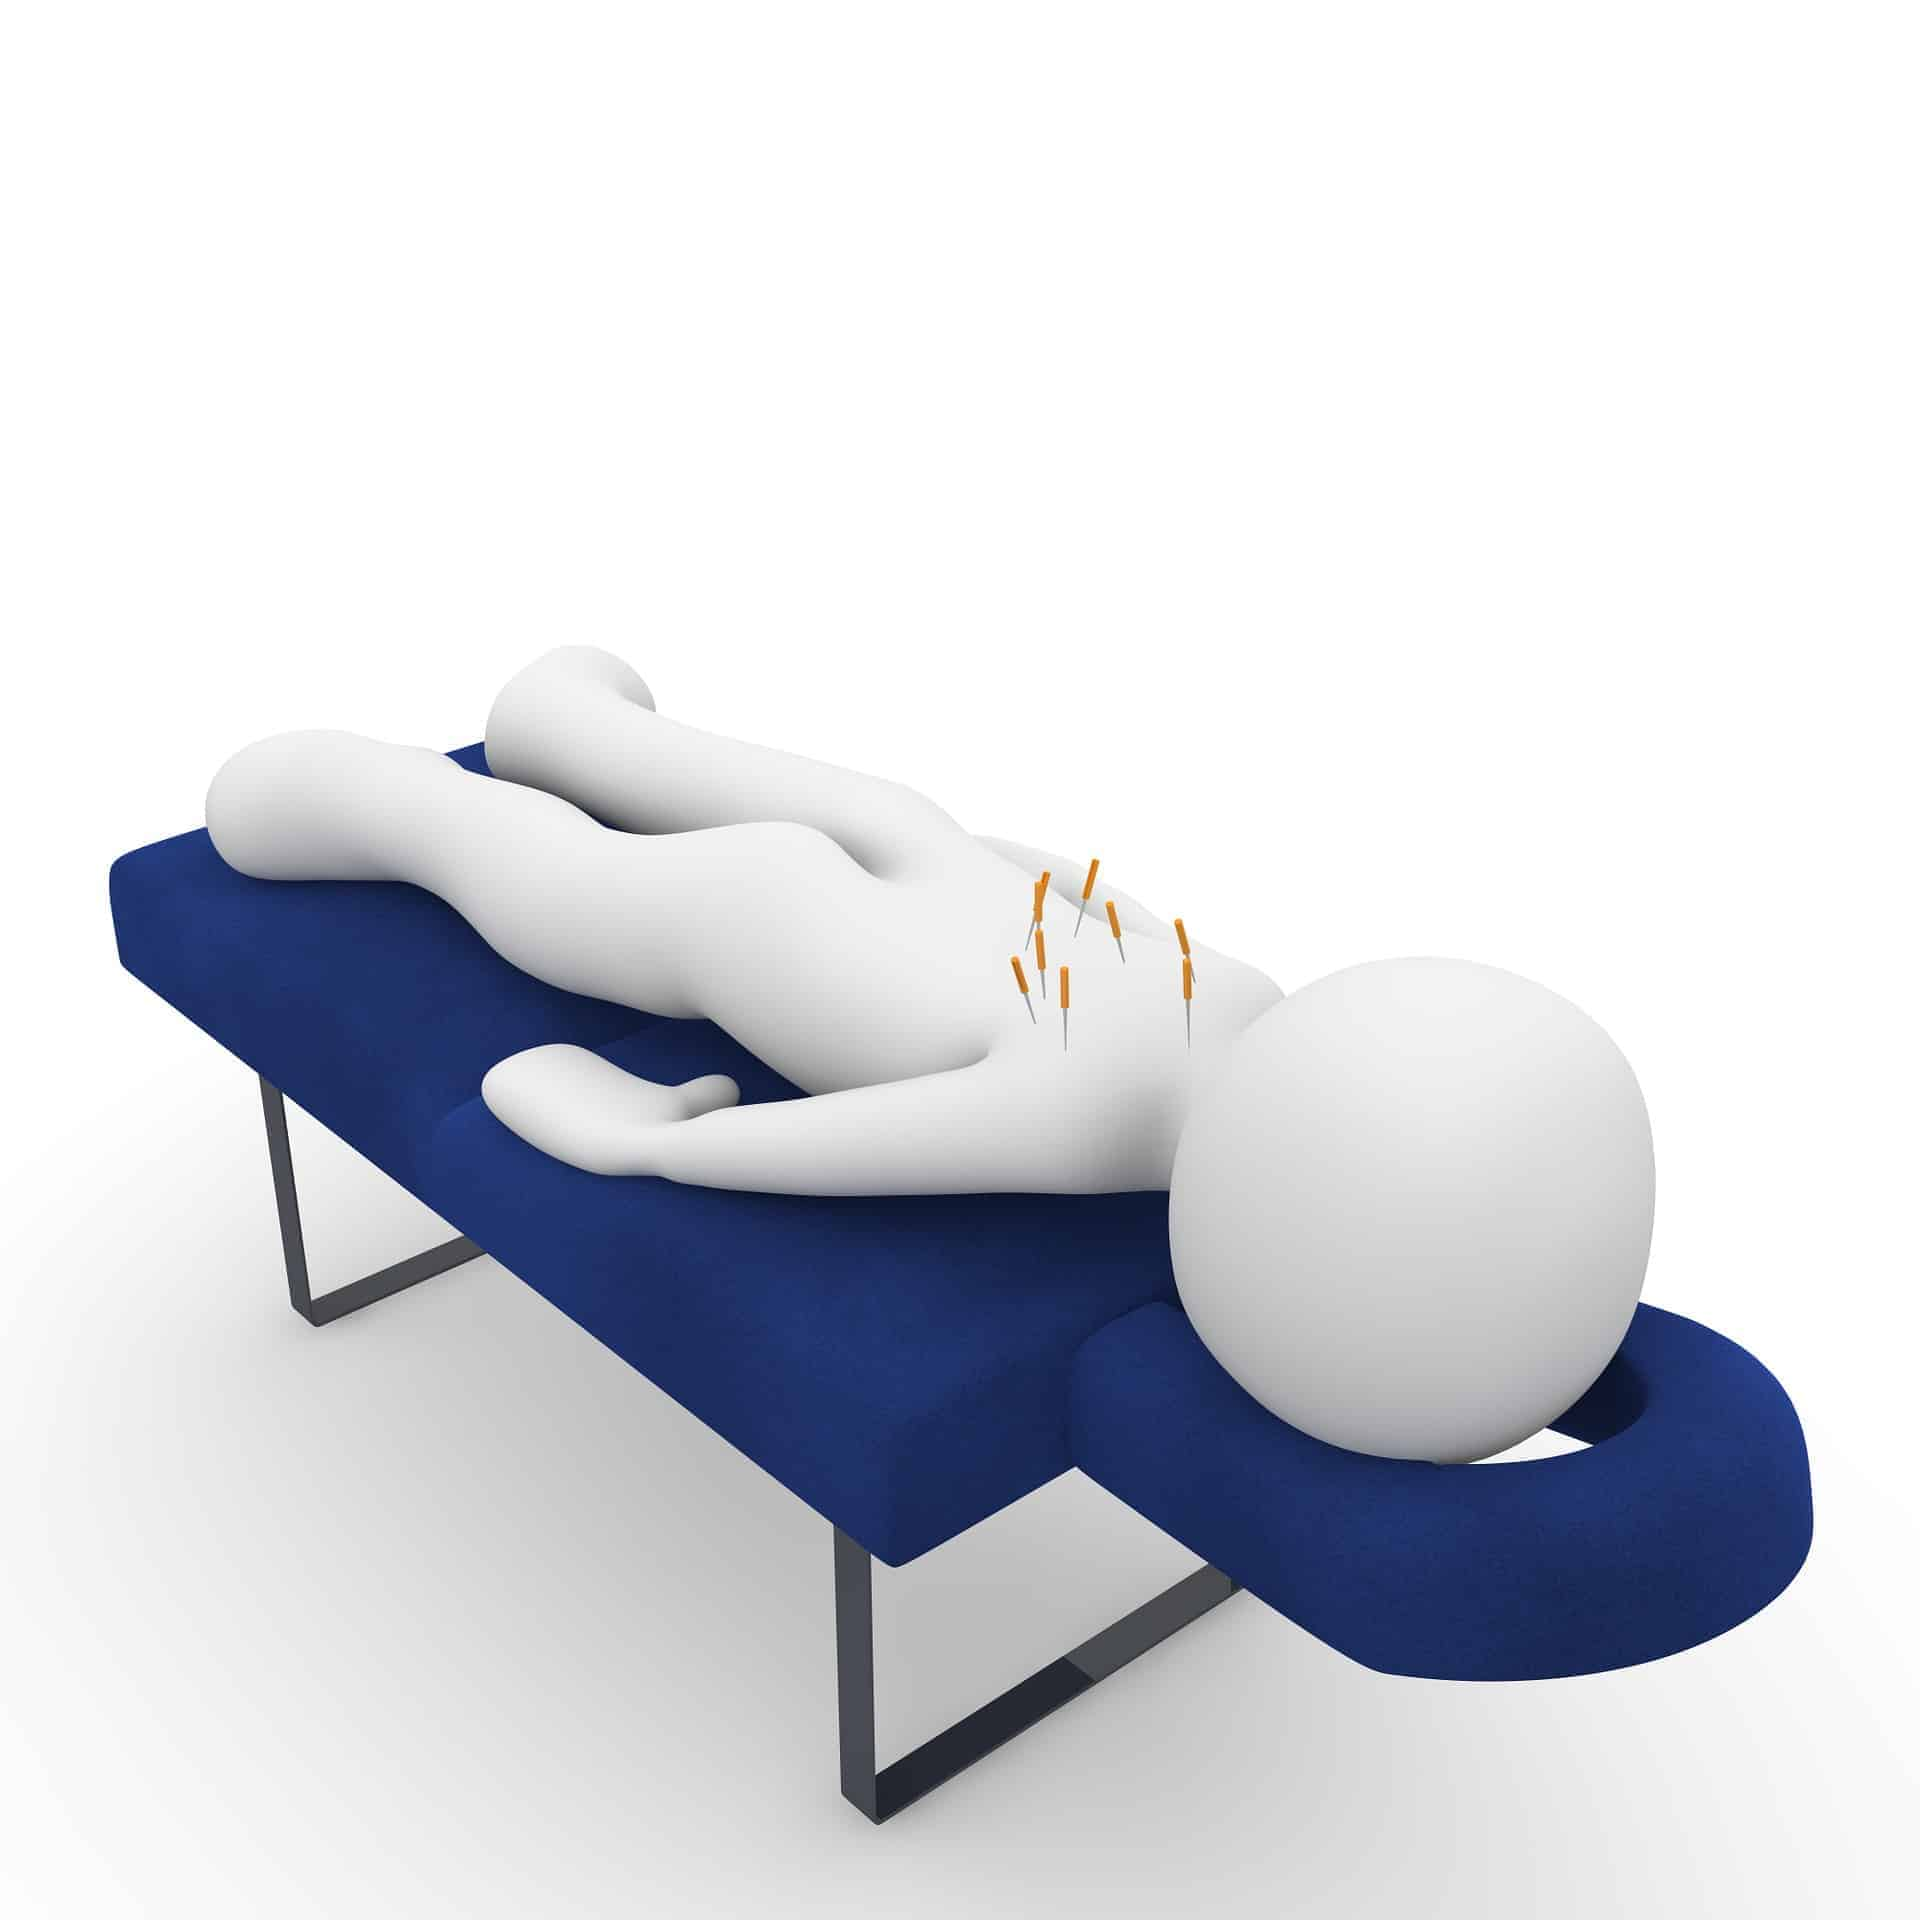 10 Benefits of Acupuncture